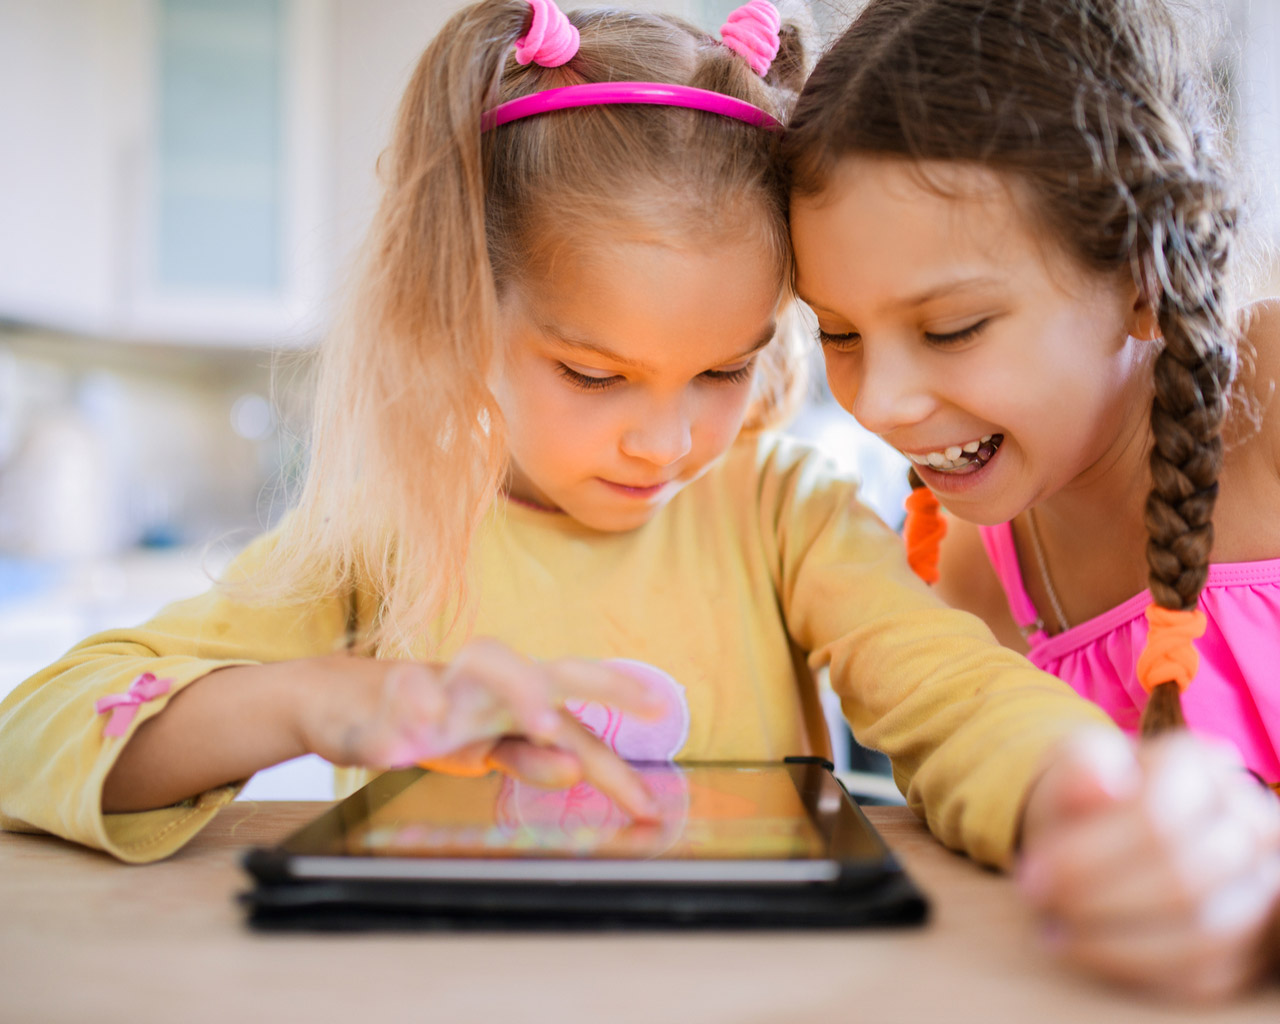 Two children play happily on a tablet